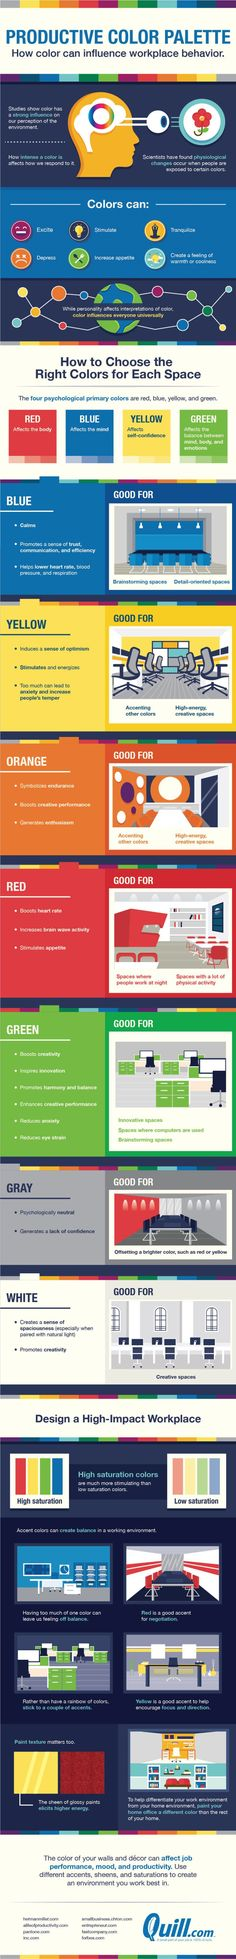 These Are The Best Office Colors For Working More Productively